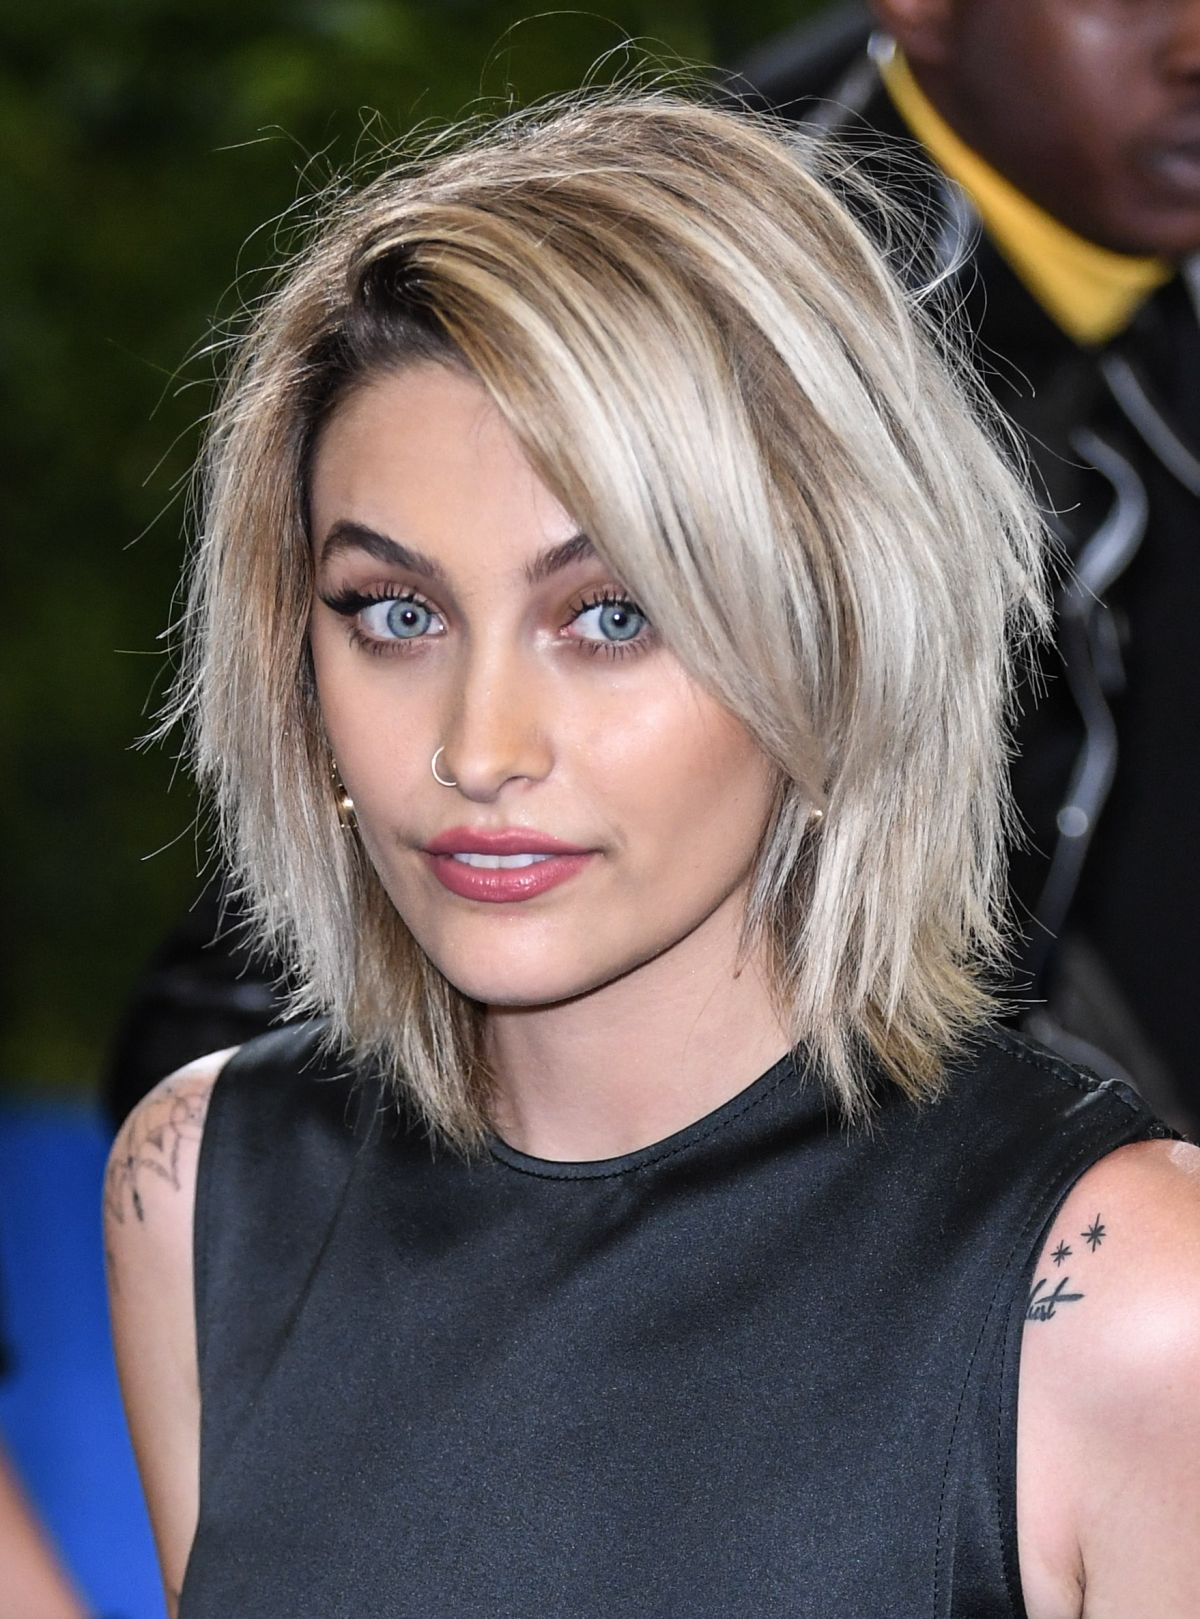 Paris Jackson At 2017 Met Gala In Nyc Celebzz Celebzz